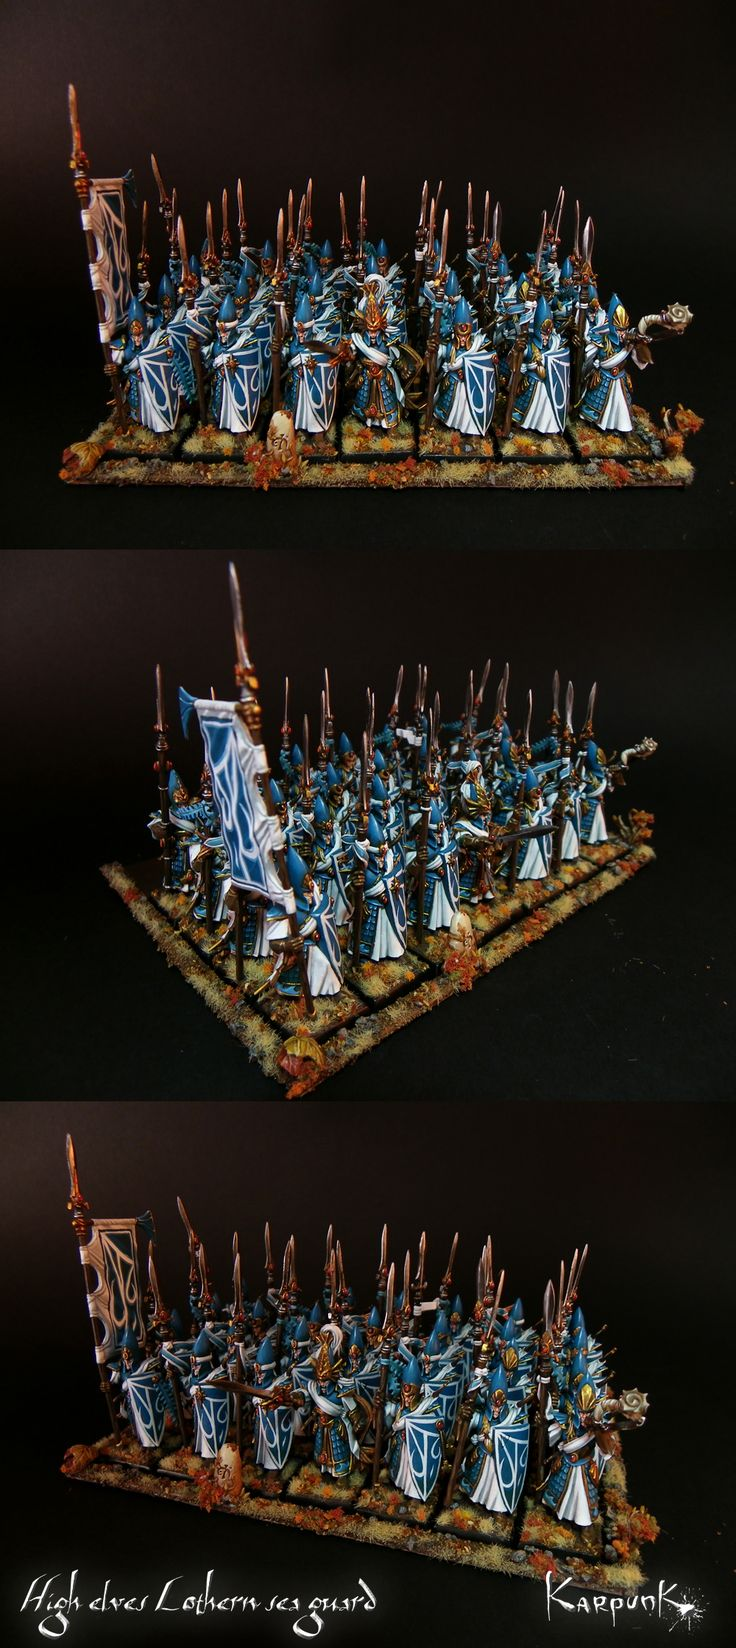 High elves Lothern sea guard